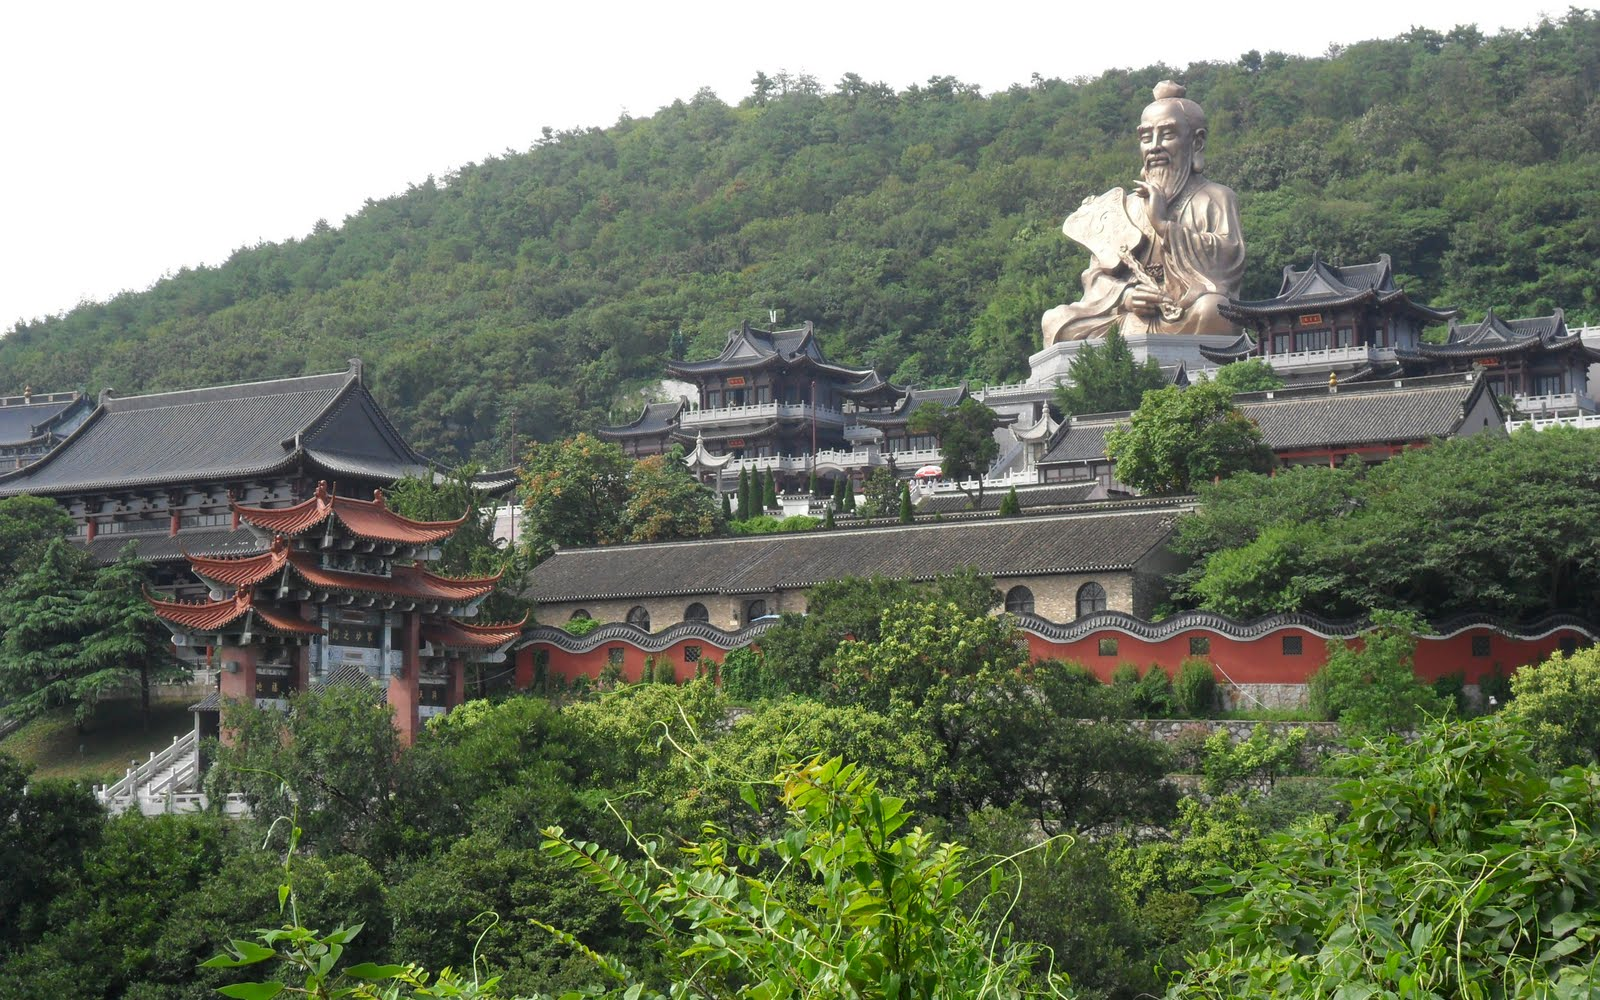 a history of taoism in main land china Taoism, also known as daoism, is an indigenous chinese religion often  associated  jing also refers to tao as something that existed before heaven  and earth, a  and both are concerned with appropriate behavior and ways of  leading and.